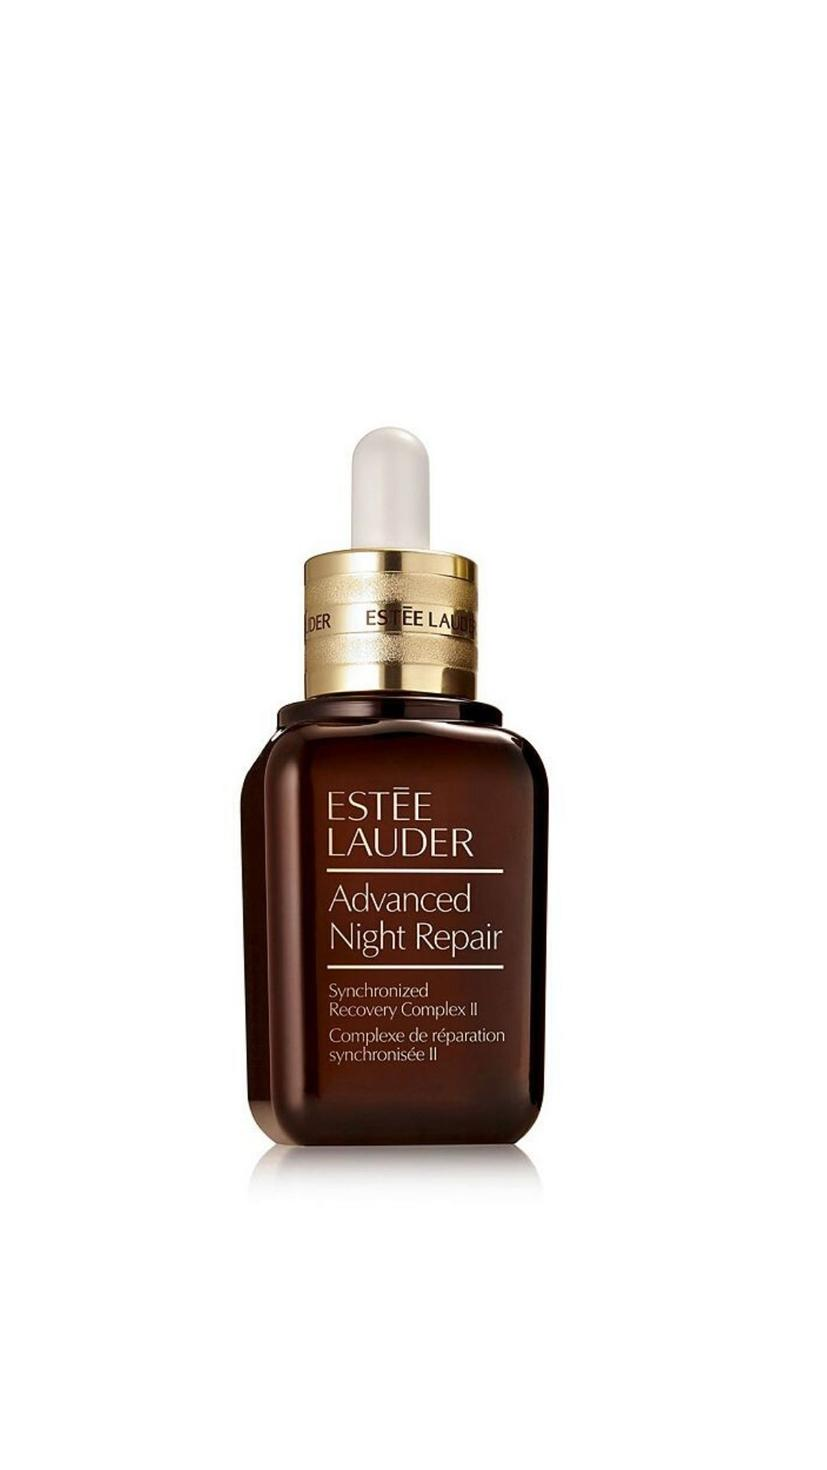 Beauty Oils, Night Oils, Skincare, Facial Oil, Estee Lauder, Kiehls, Best Facial Oils, Night oils for face